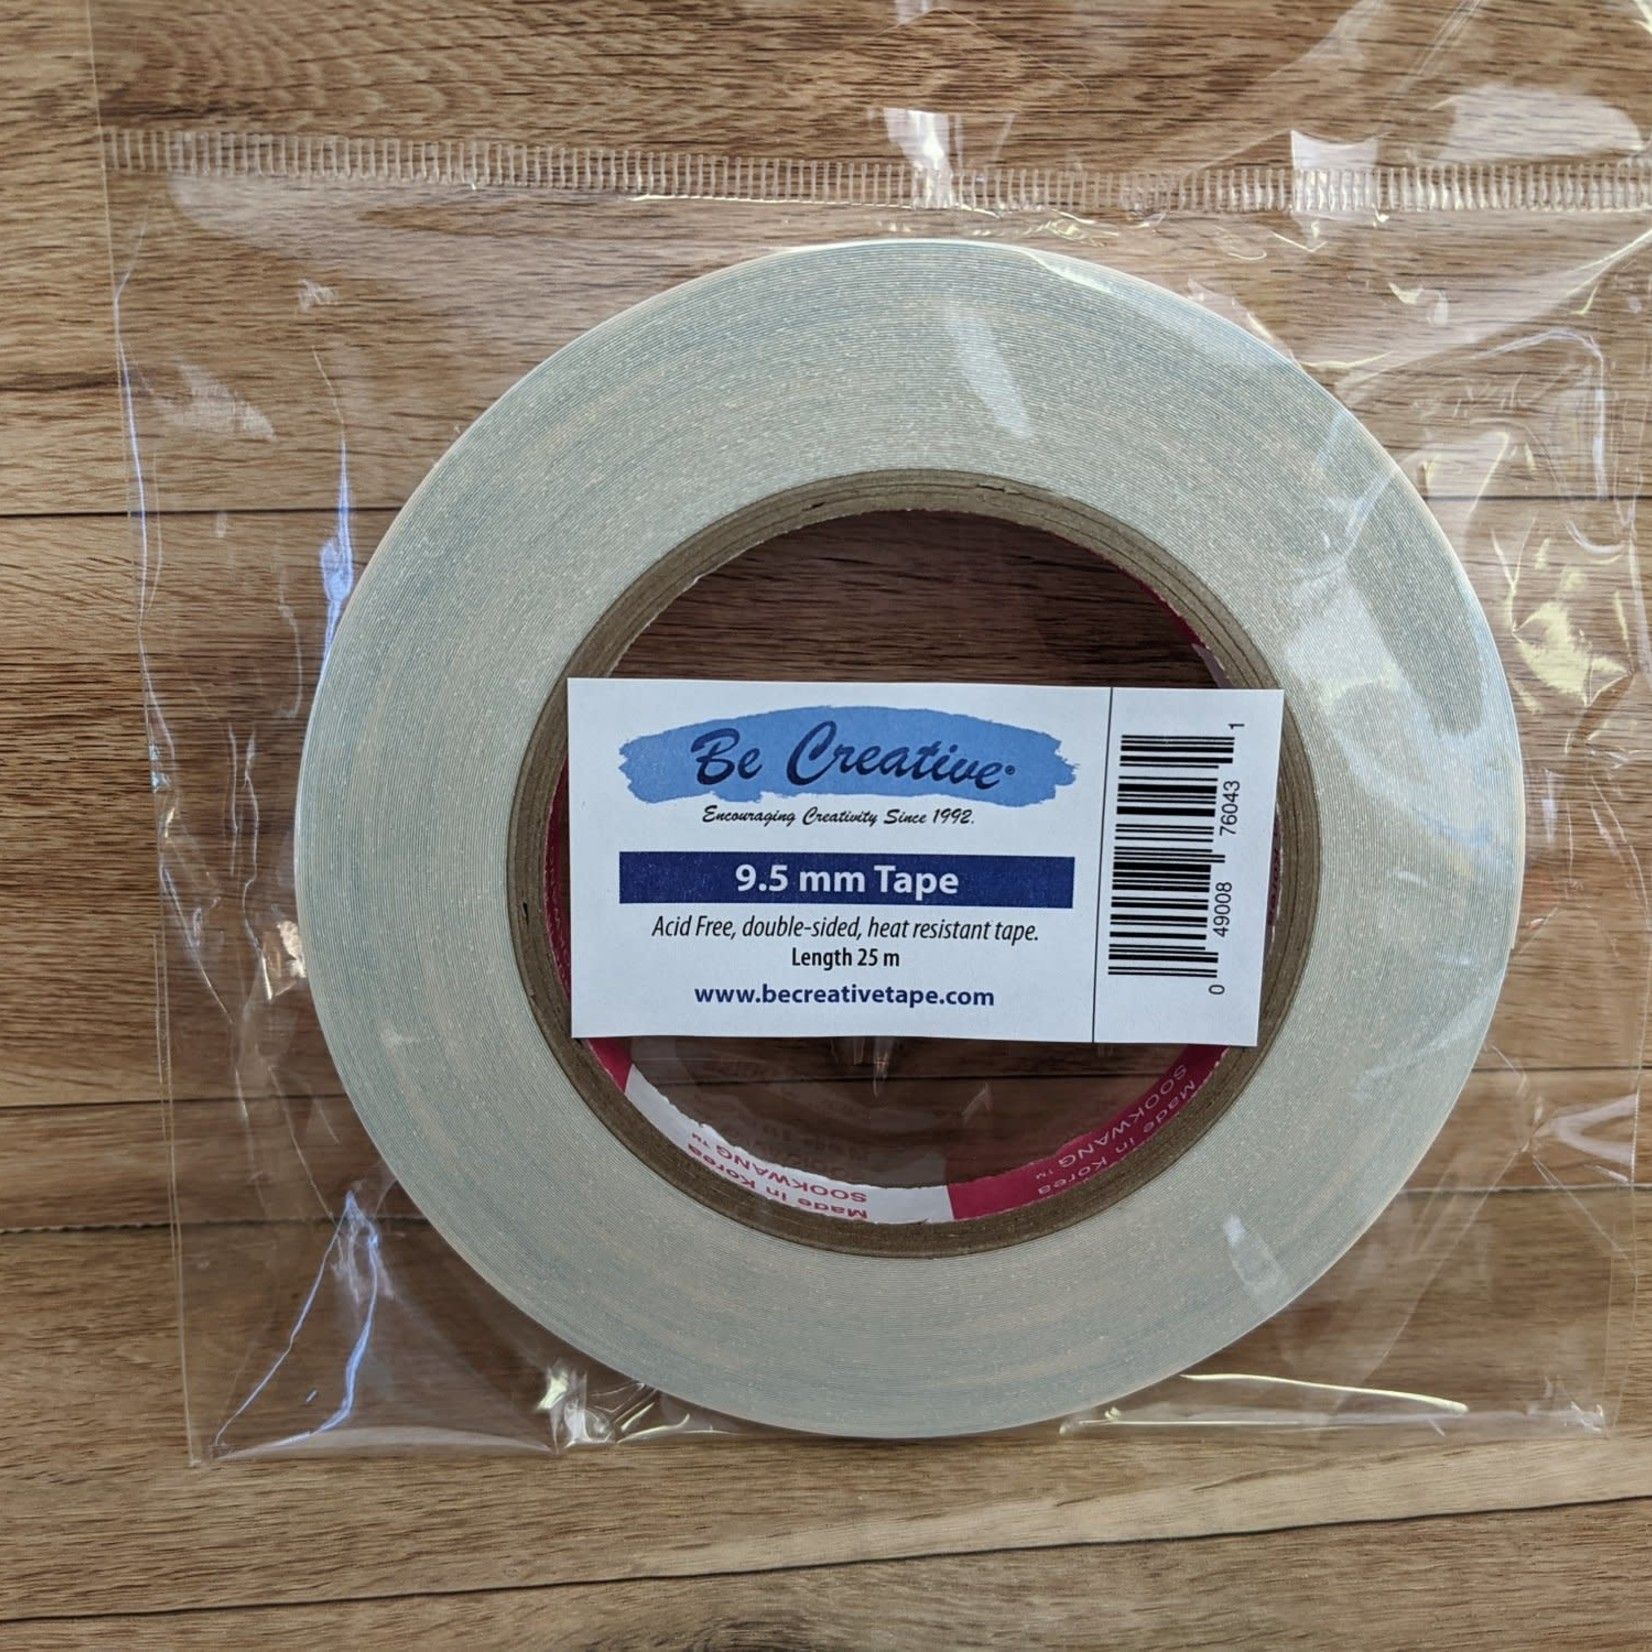 Be Creative 9.5 mm Tape